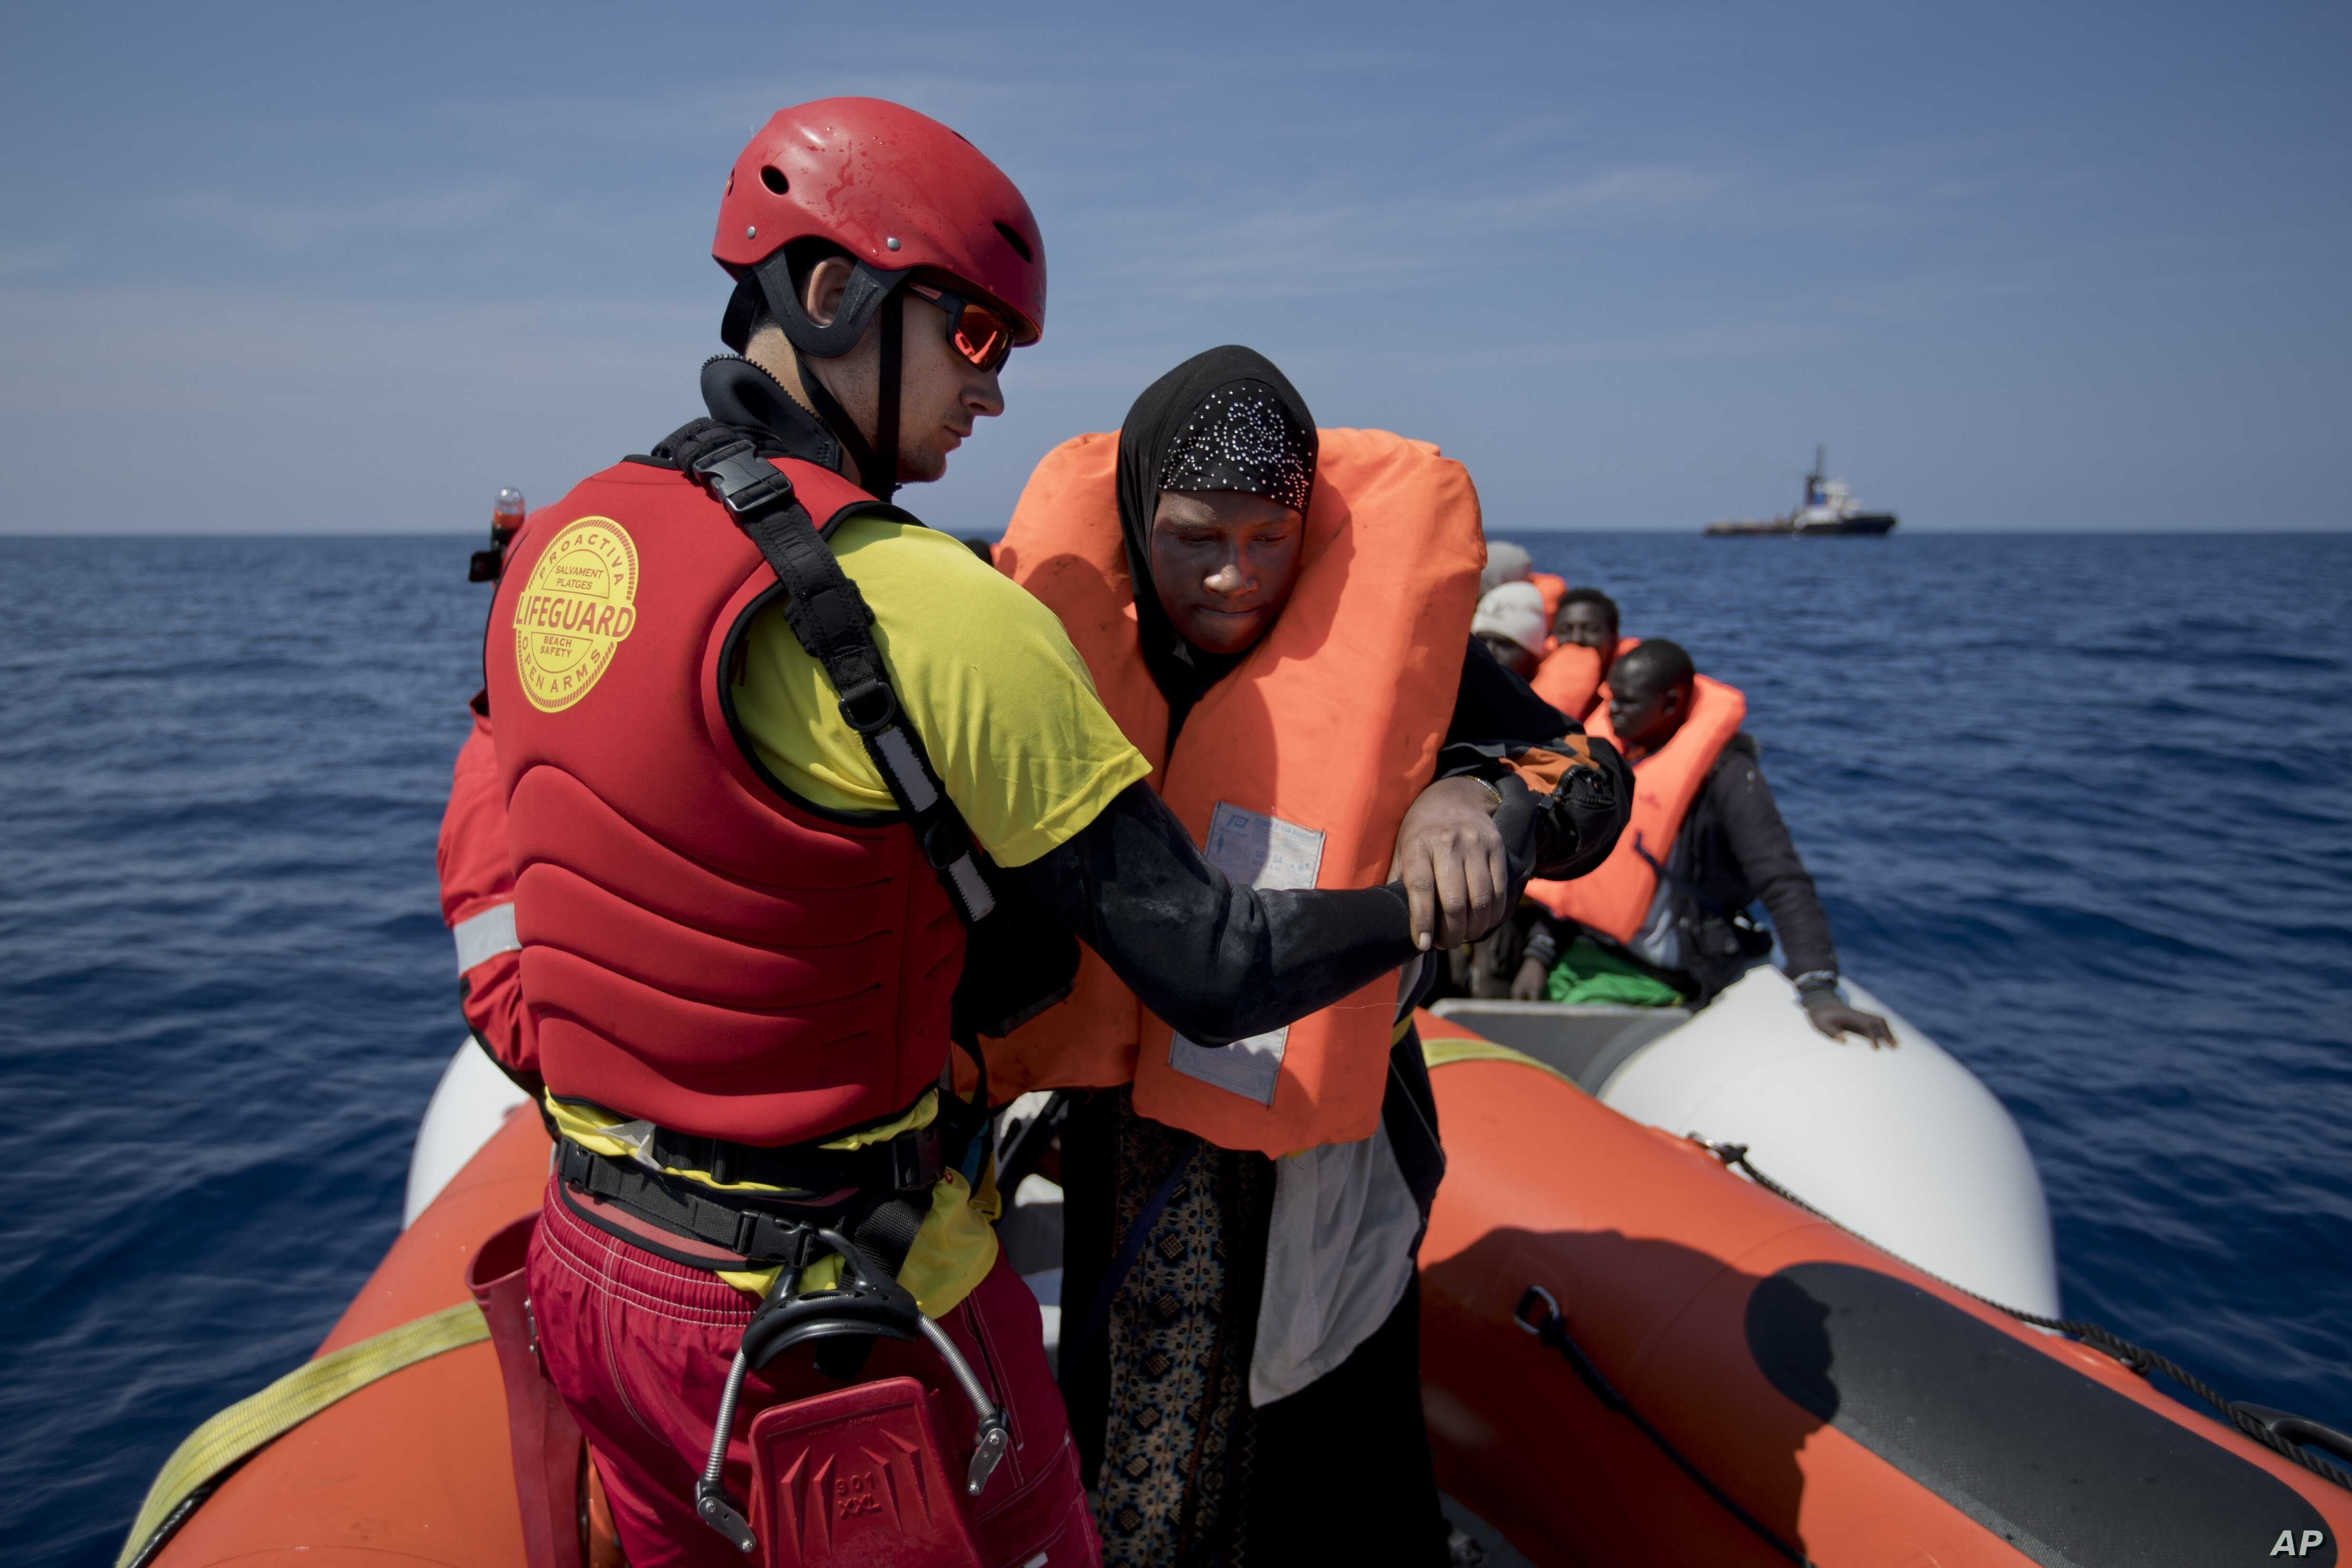 FILE - Proactiva Open Arms lifeguard Ivan Martinez, from Spain, rescues migrants from a rubber boat sailing out of control, in the Mediterranean Sea, about 56 miles north of Sabratha, Libya, April 6, 2017. Spain's maritime rescue service says it resc...